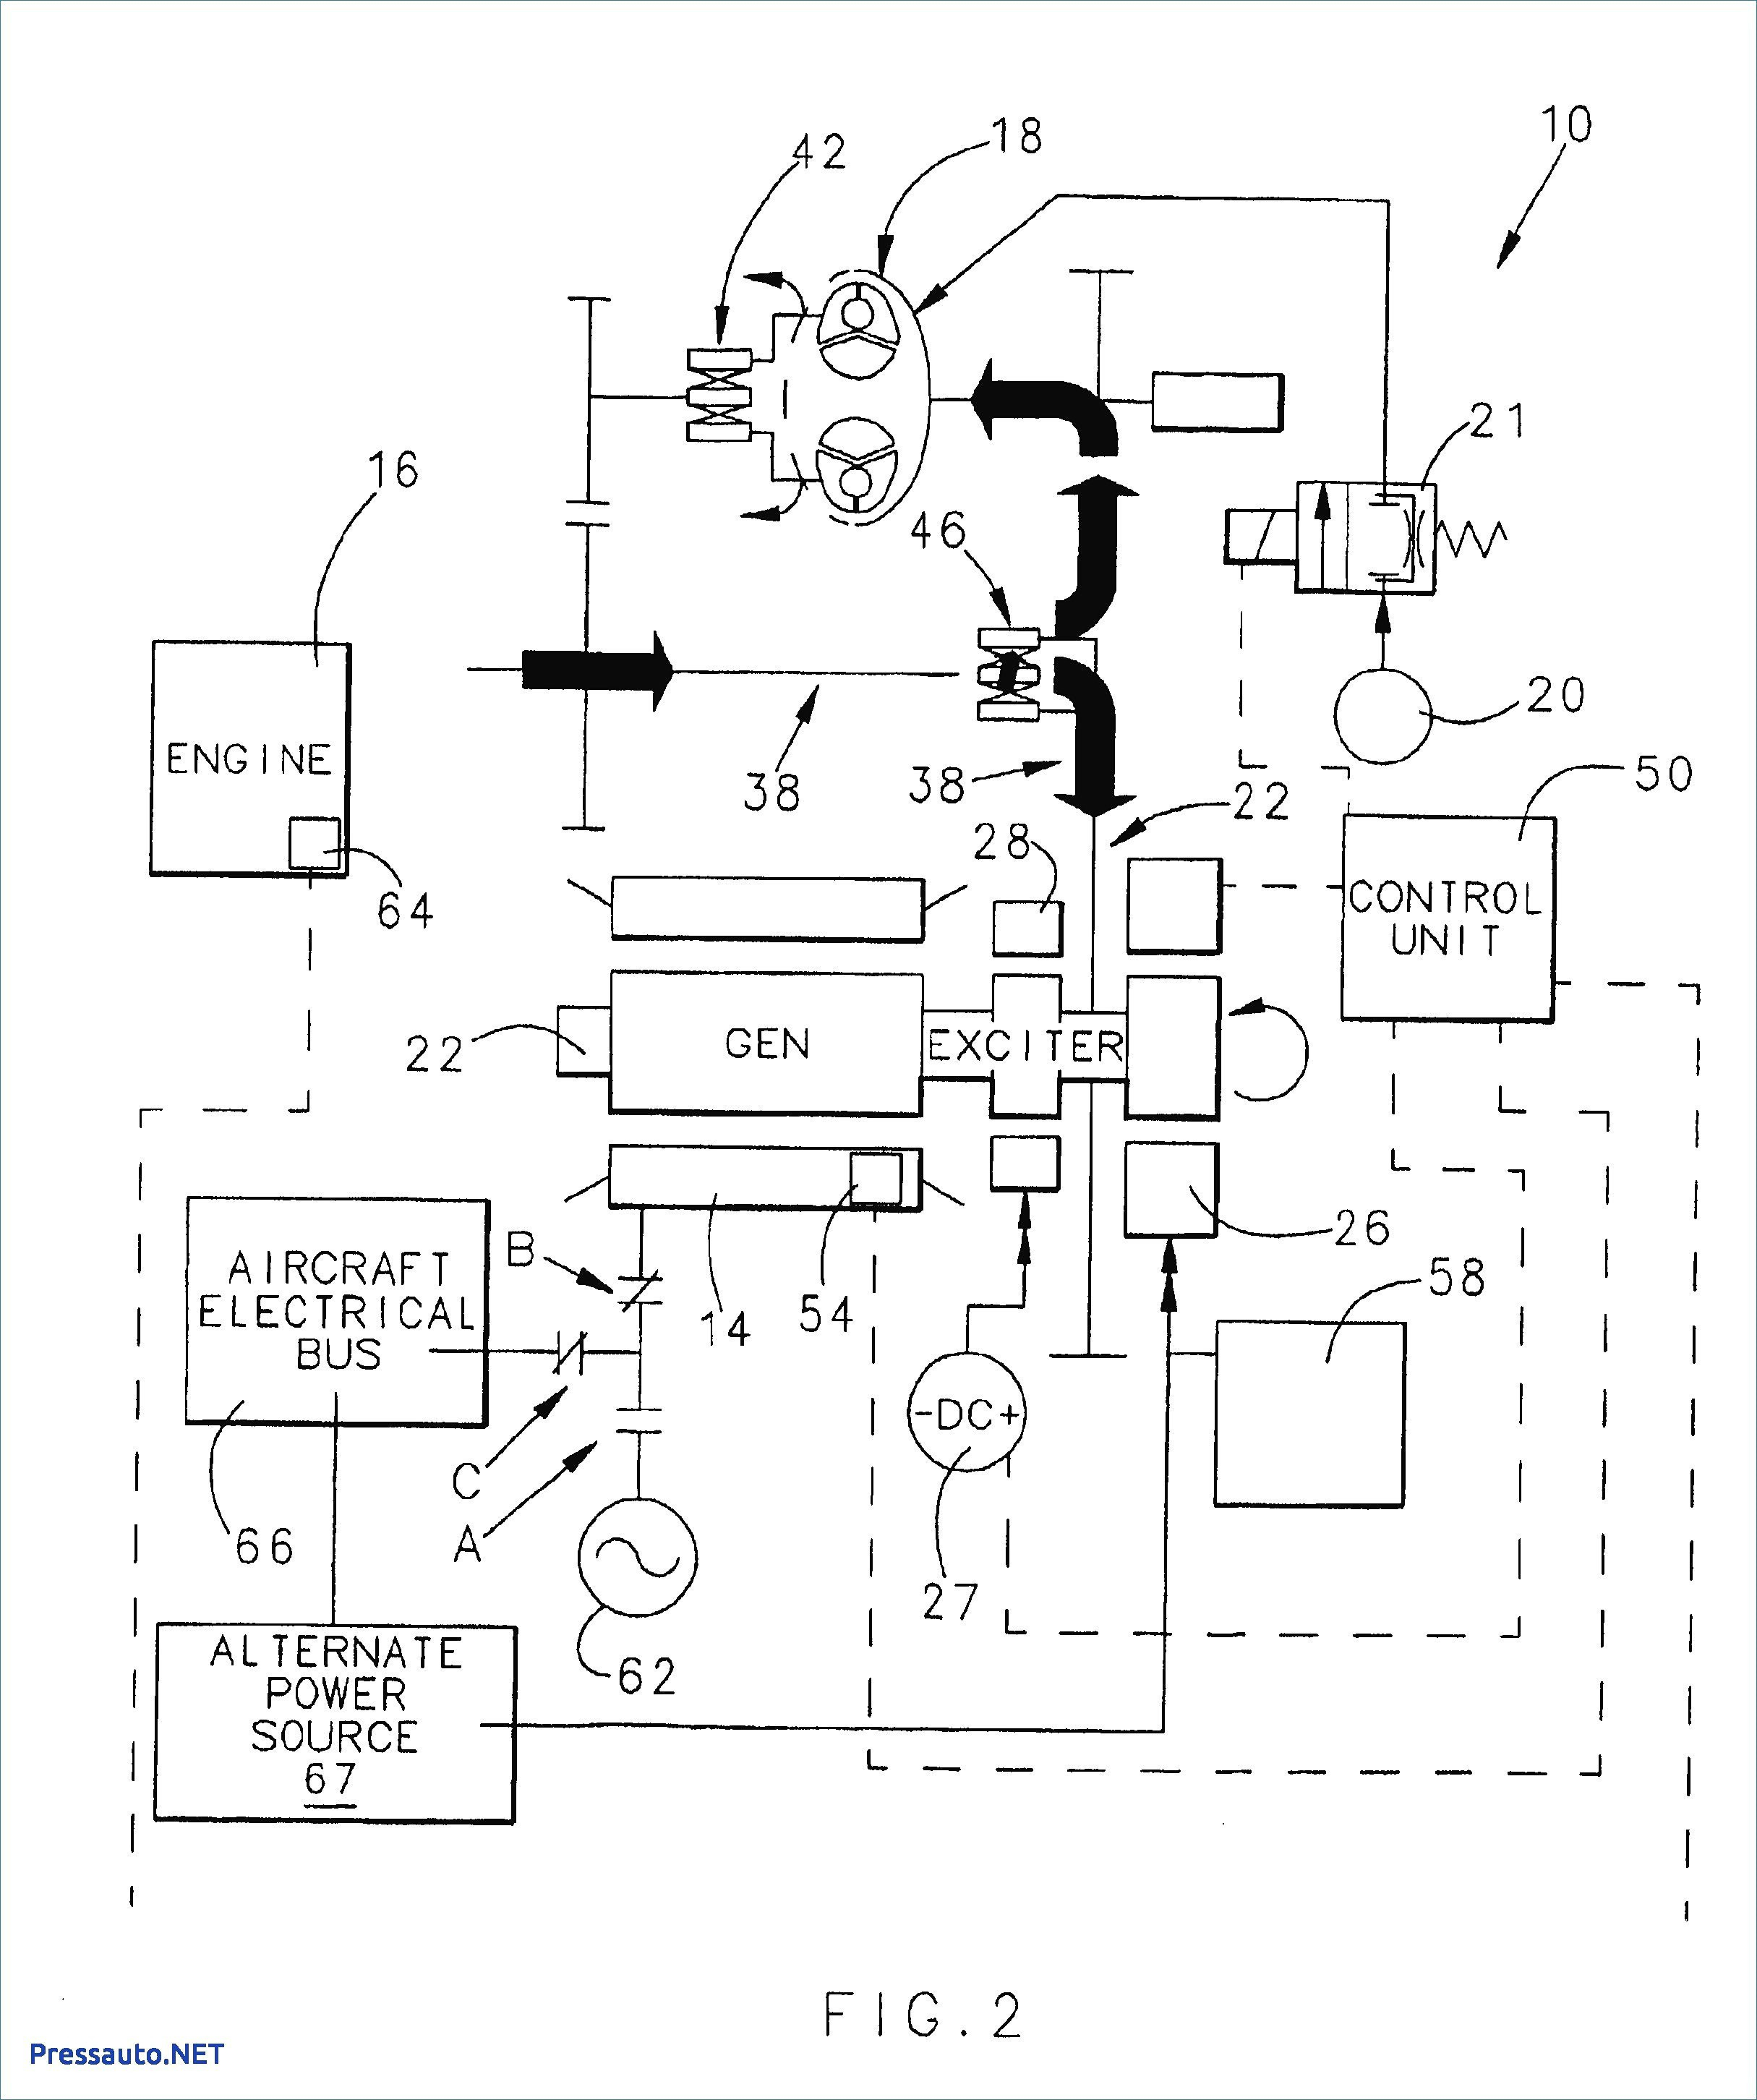 [SCHEMATICS_4NL]  DIAGRAM] Delco 21si Alternator Wiring Diagram FULL Version HD Quality Wiring  Diagram - JOTWIRING.A-MON-IMAGE.FR | Delco 21si Alternator Wiring Diagram |  | altronix relay wiring diagram